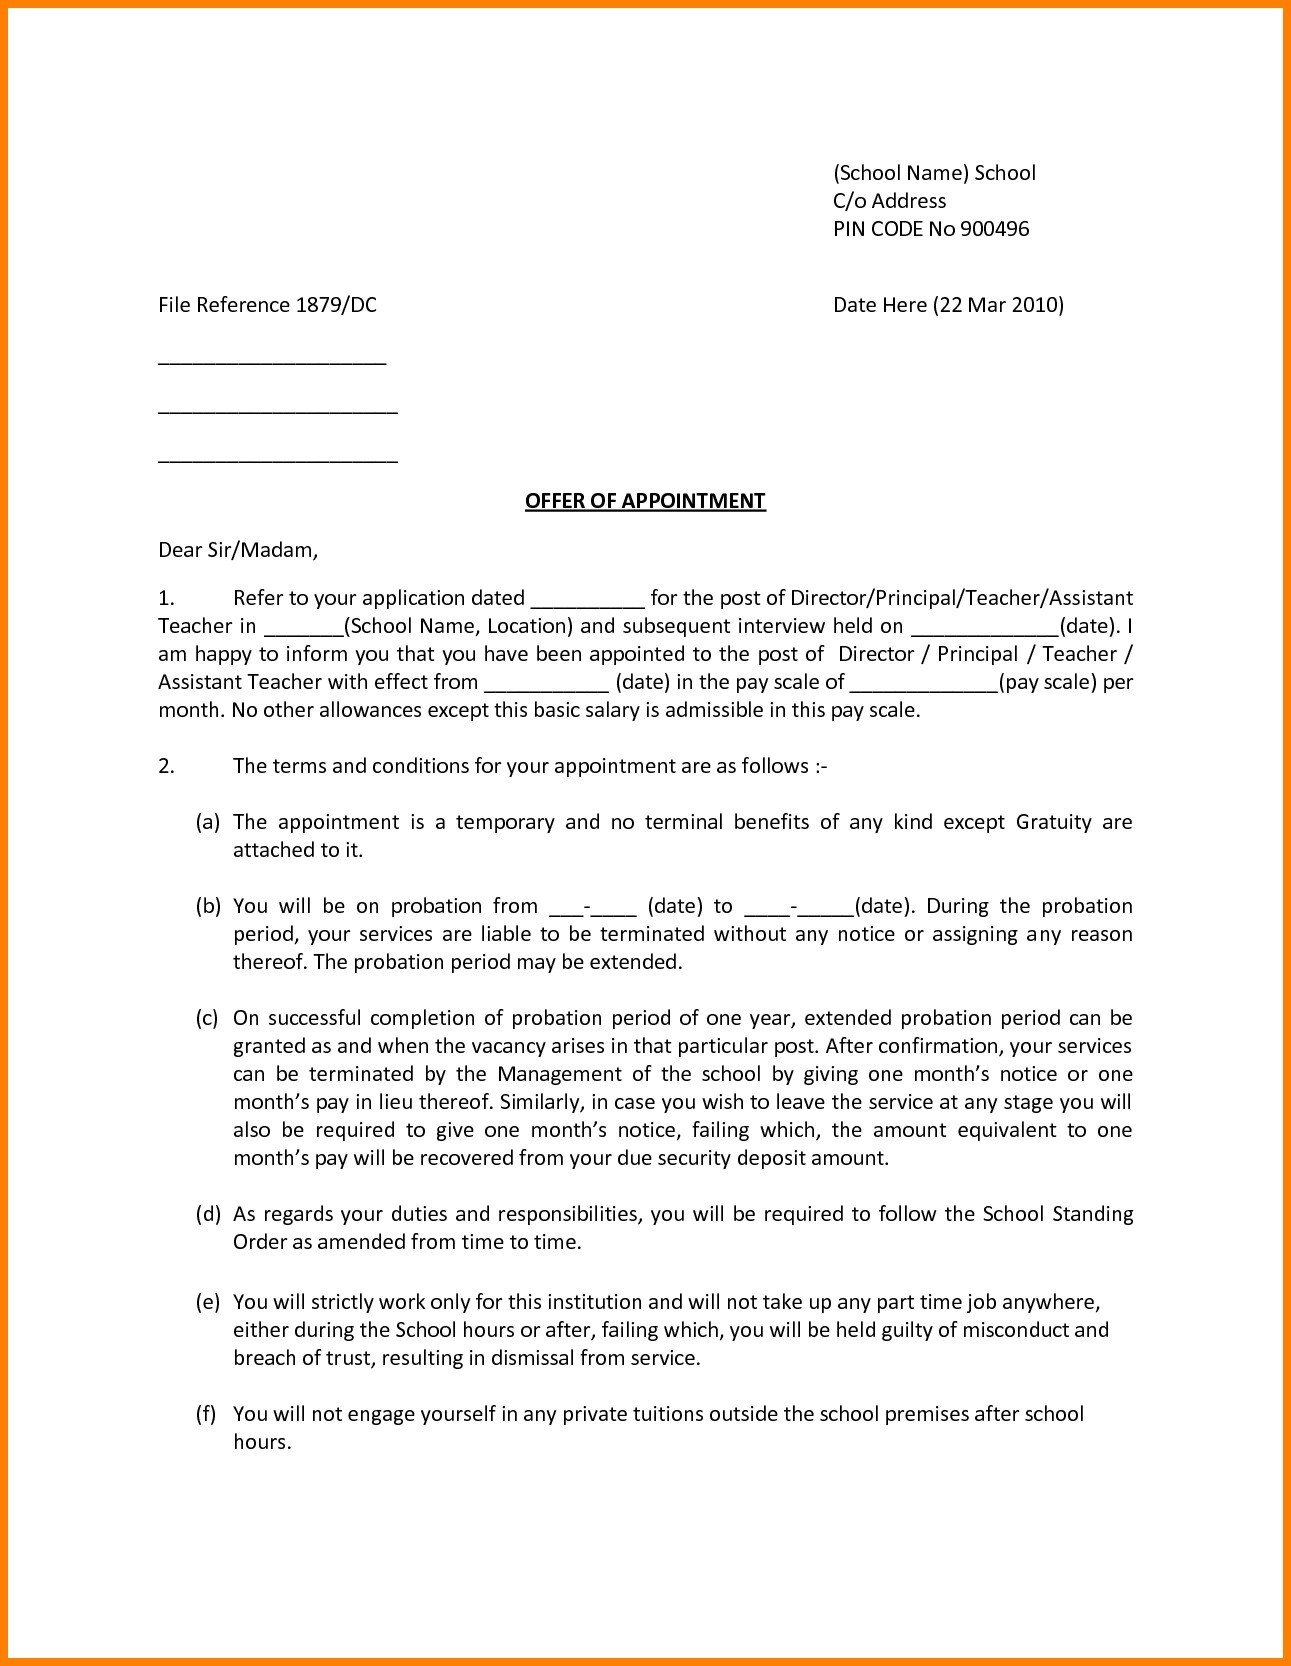 Job Offer Letter Template Pdf - Fer Letter format for A Job Save Job Fer Letter format